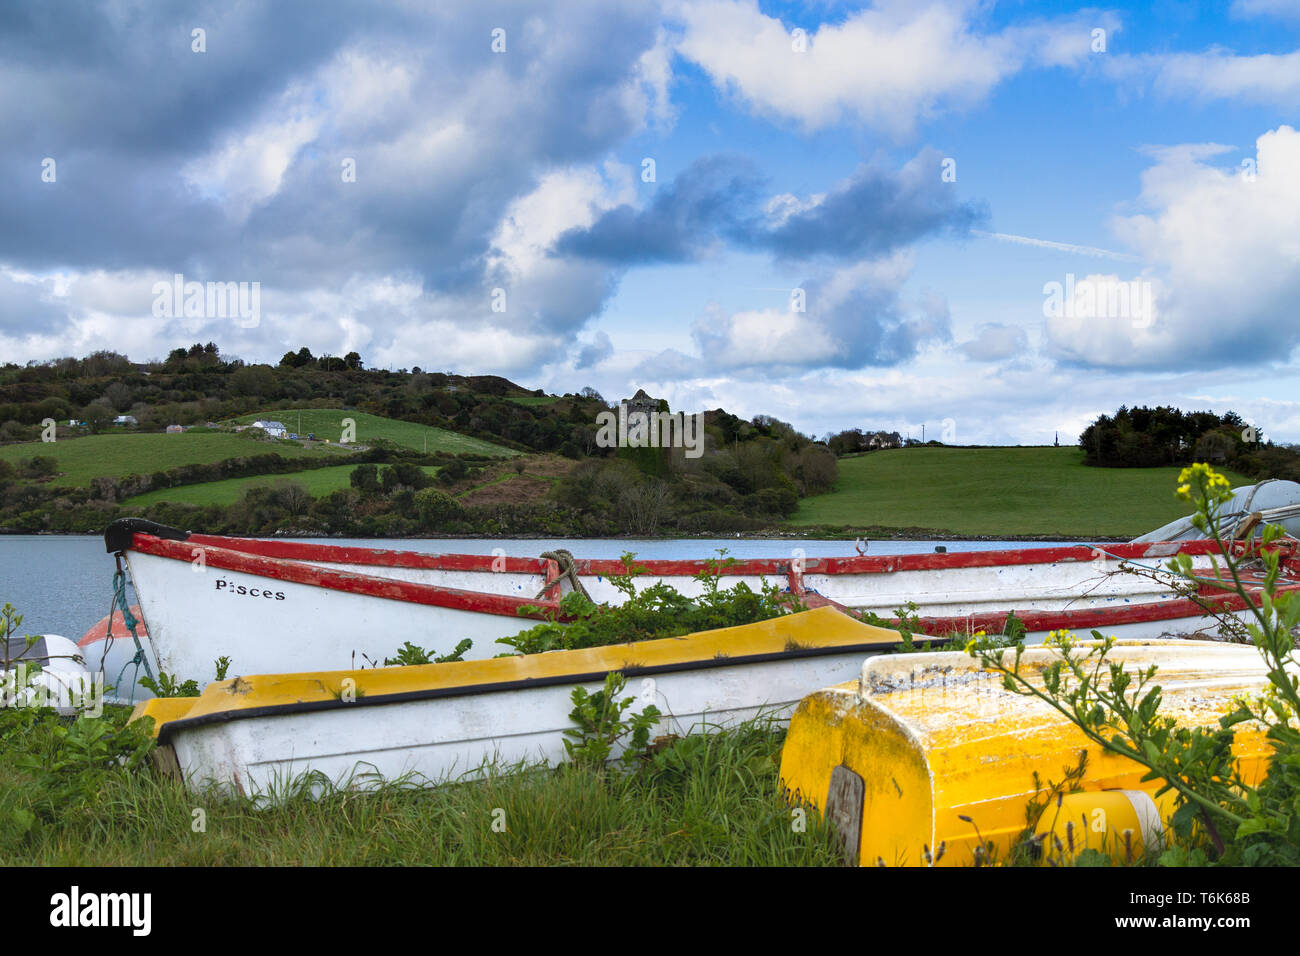 Fibreglass Boats Stock Photos & Fibreglass Boats Stock Images - Alamy